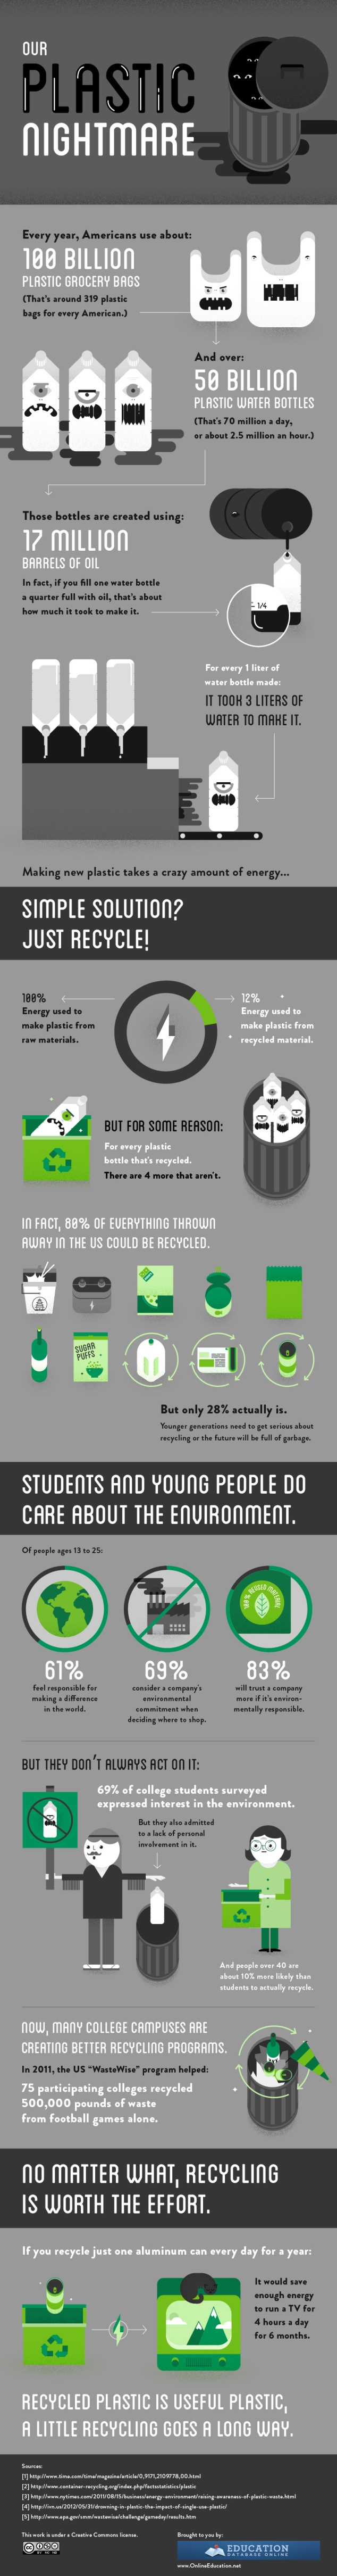 Our-Plastic-Nightmare_Final-Infographic